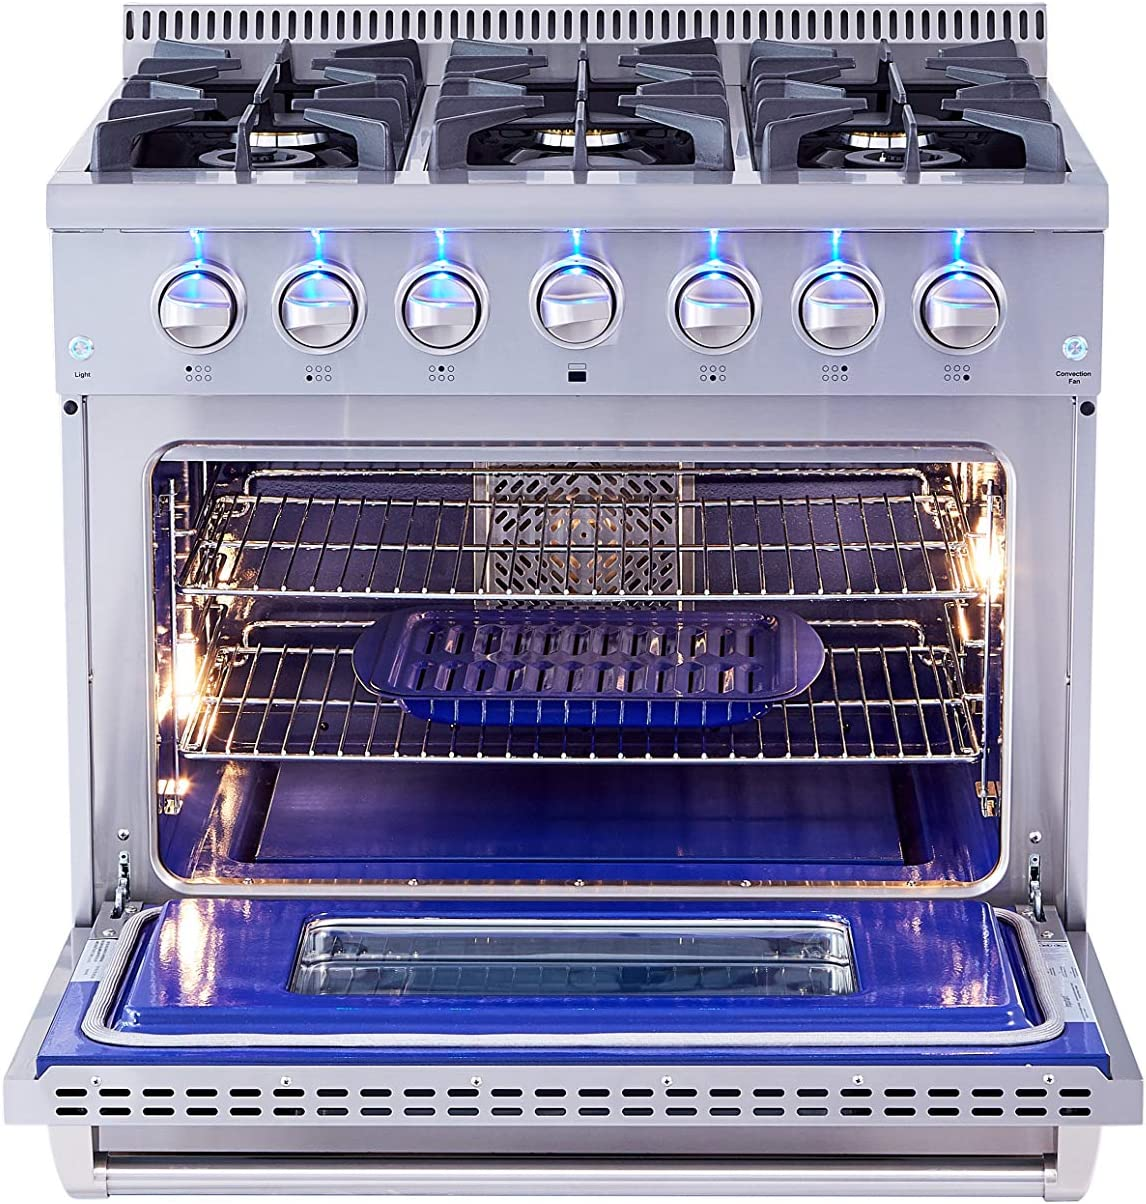 6 Burners Convection Fan Oven Blue Porcelain Oven Interior Ft In Stainless Steel Thor Kitchen HRG3618U 36 Freestanding Professional Style Gas Range with 5.2 Cu Cast Iron Grates